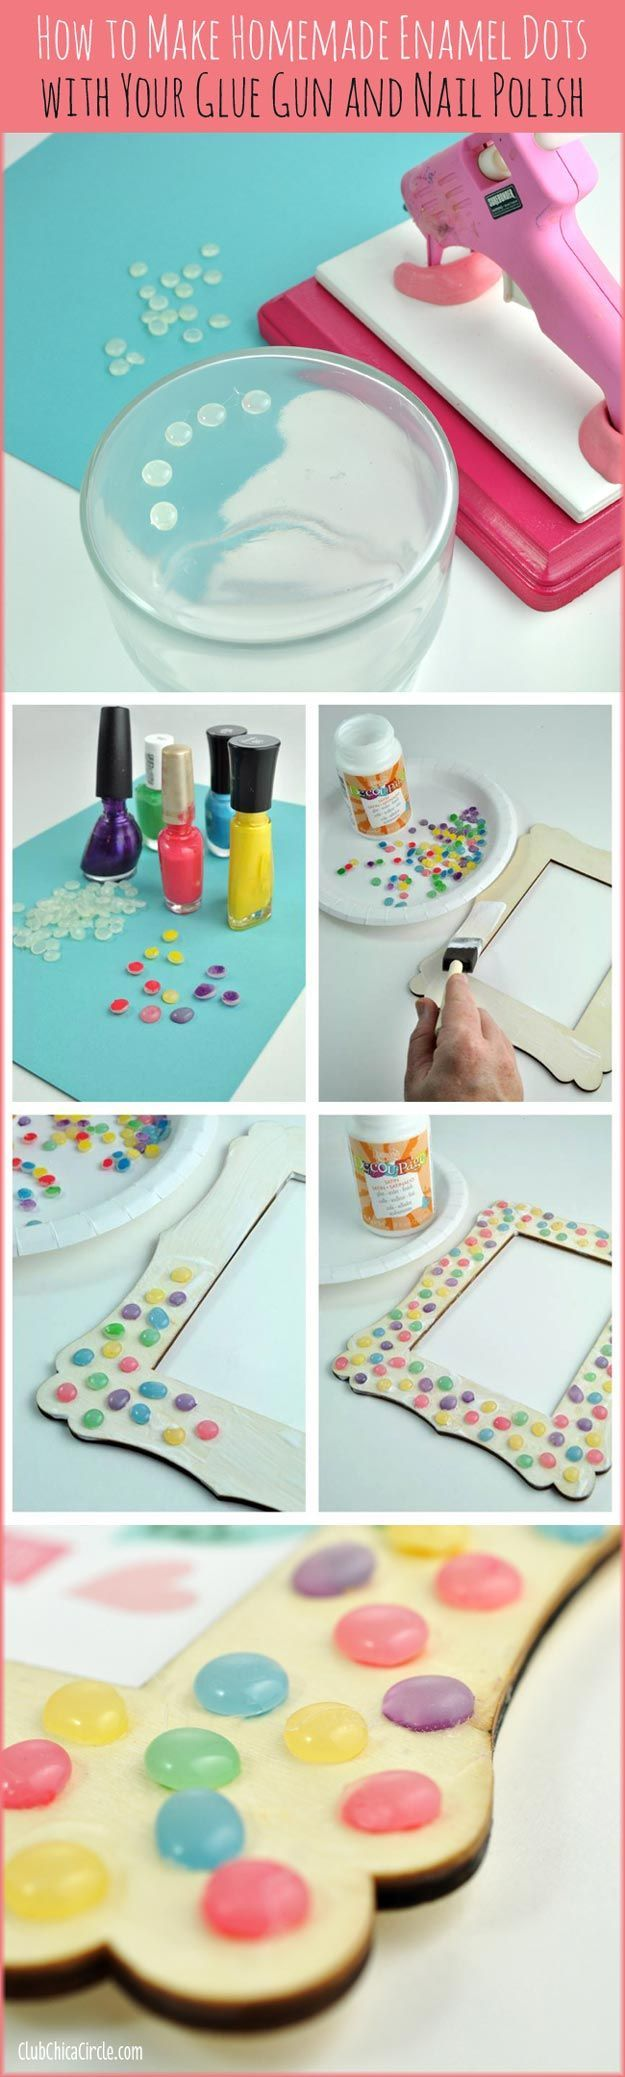 Cheap Crafts Best 25 Diy Crafts Home Ideas On Pinterest Home Crafts Diy